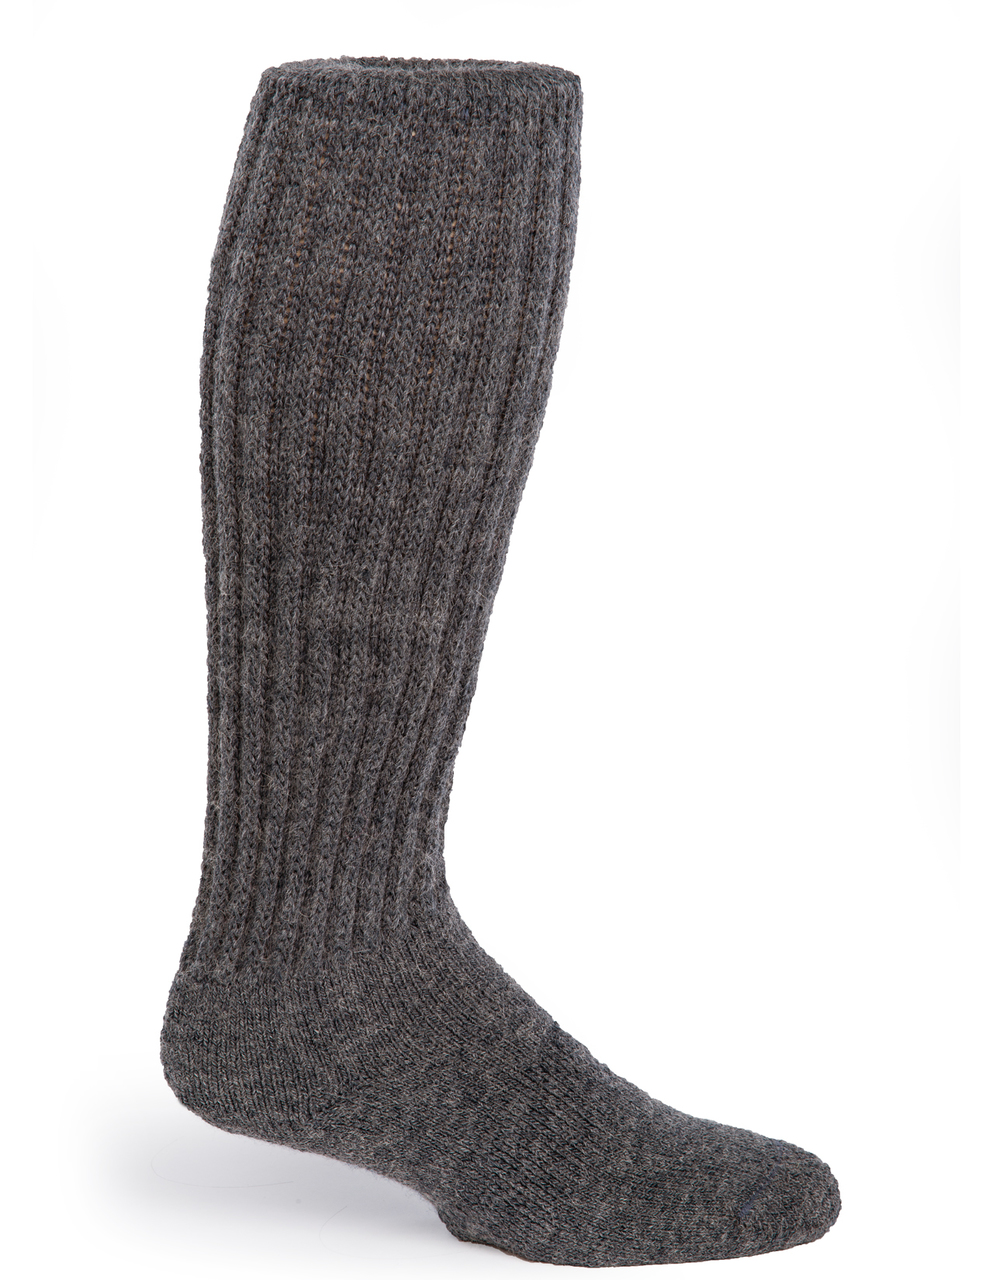 Second to None - Thick Alpaca Boot Socks Side